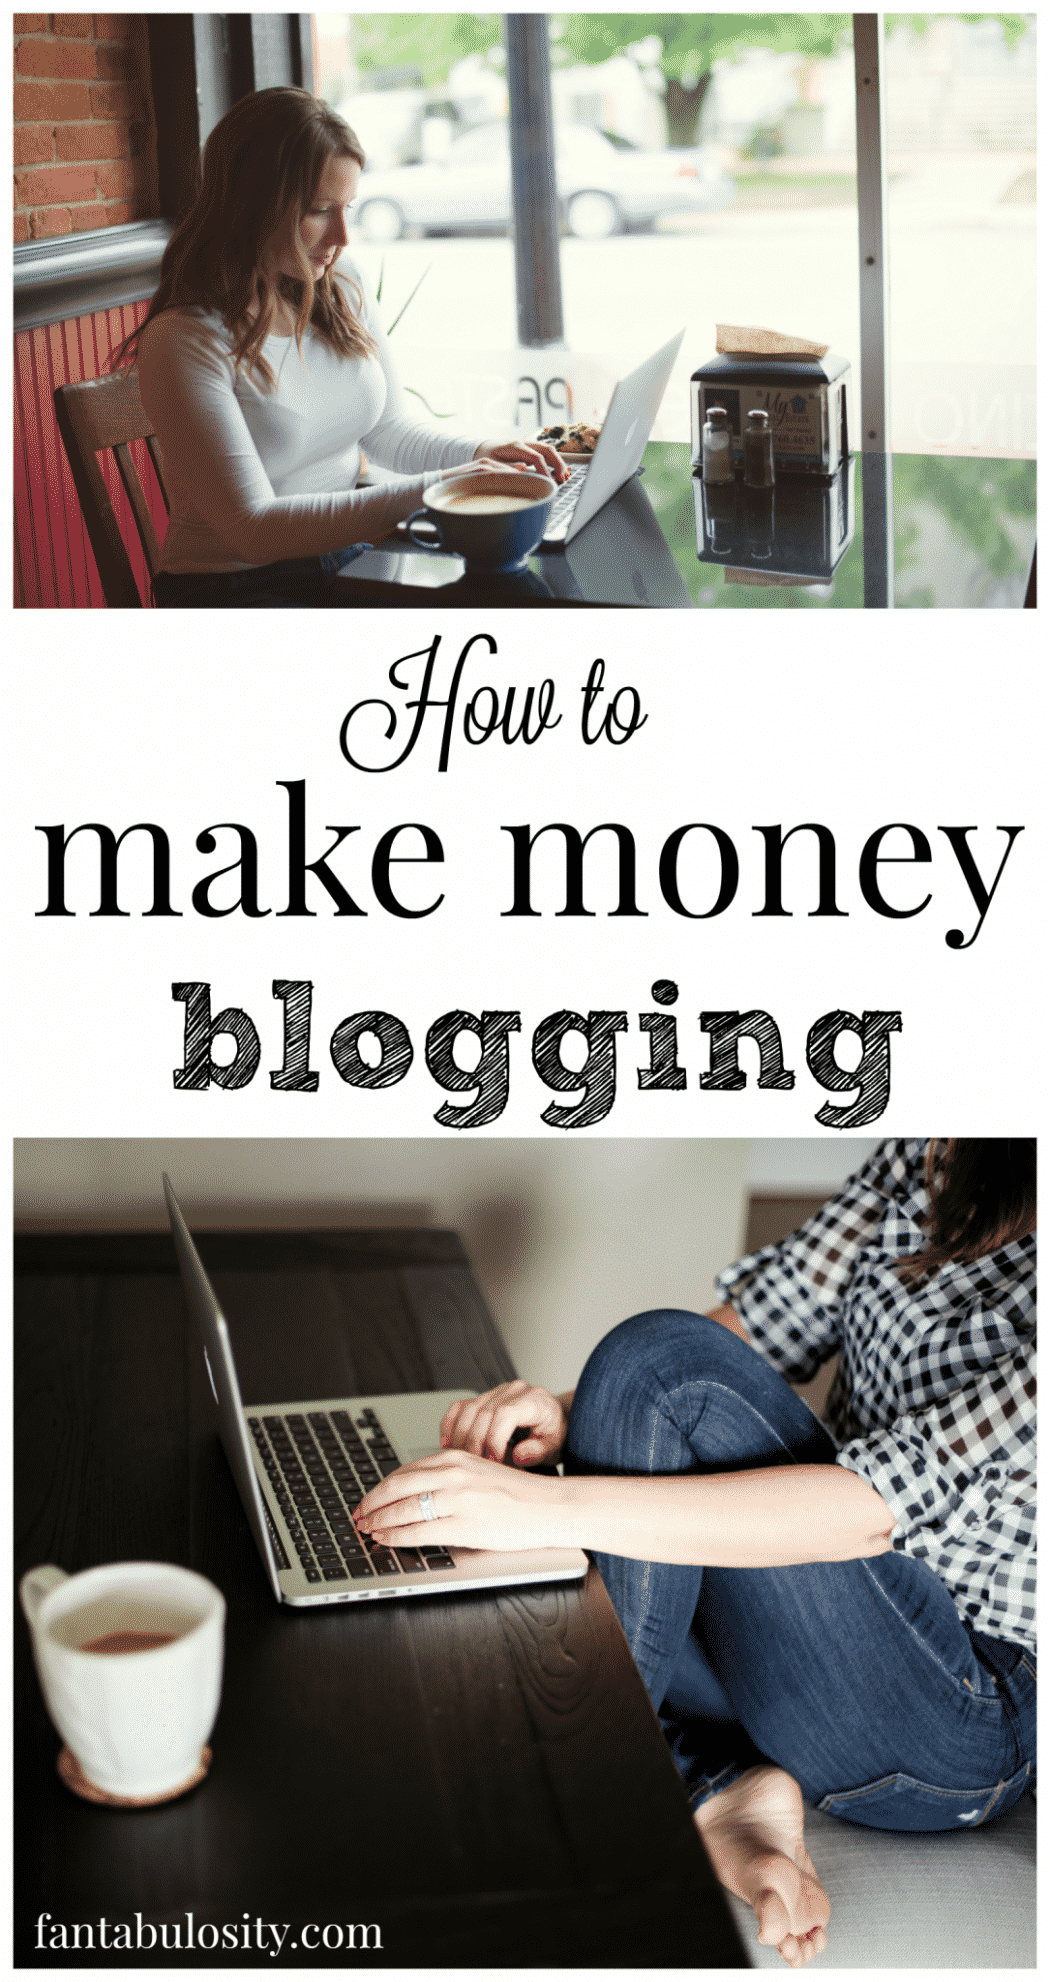 She shows you exactly what companies & websites she uses to make money blogging. How to make money blogging. how do you make money blogging, making money with a blog, can you make money with a blog. sponsored posts, affiliate, advertising, ad networks, and more!